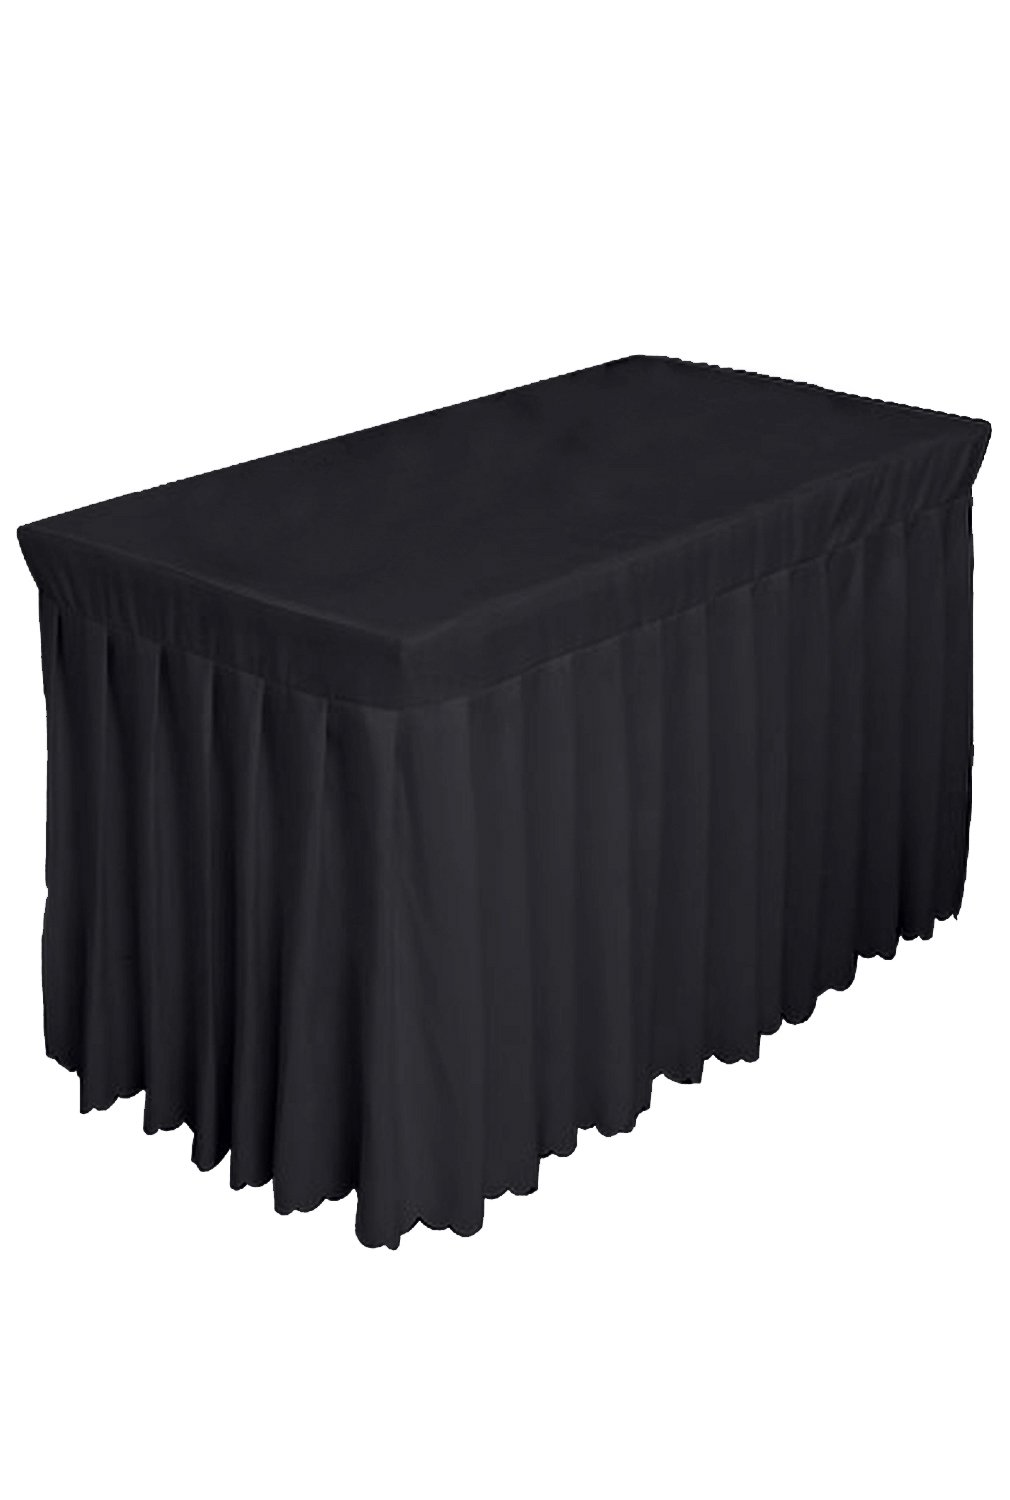 Tina 6' ft Polyester Fitted Tablecloth Table Skirt for Wedding Banquet Trade Show Black by Tina's